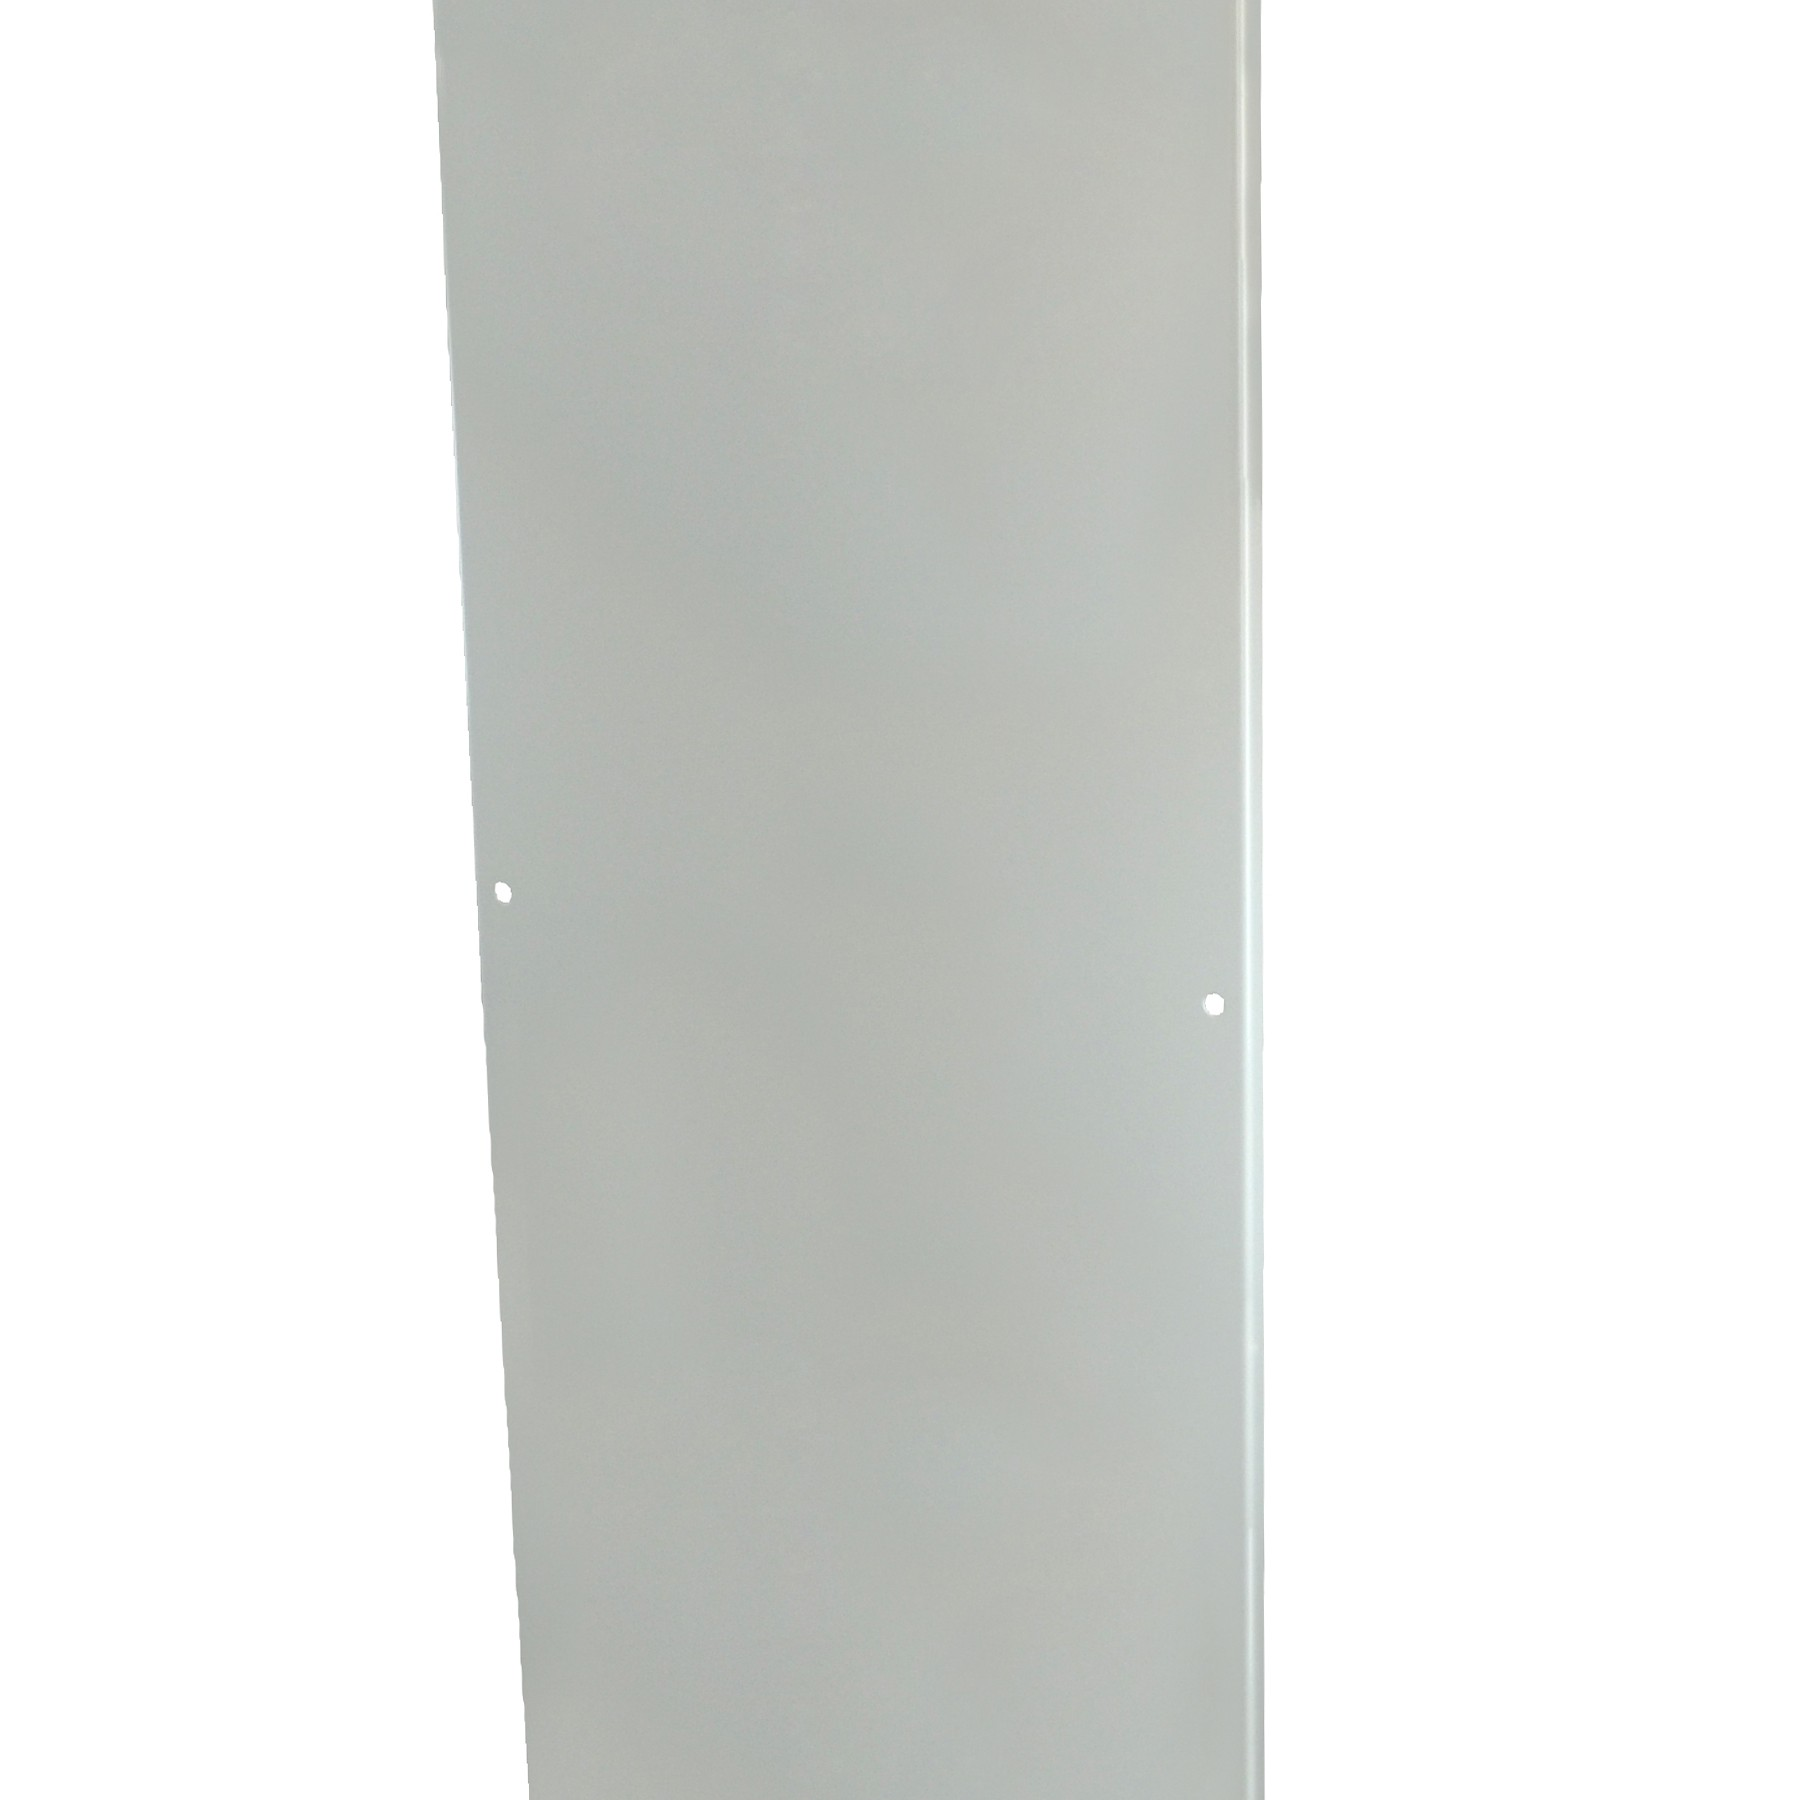 "Carbon Steel Back Panel for 72"" x 49"" Enclosures"